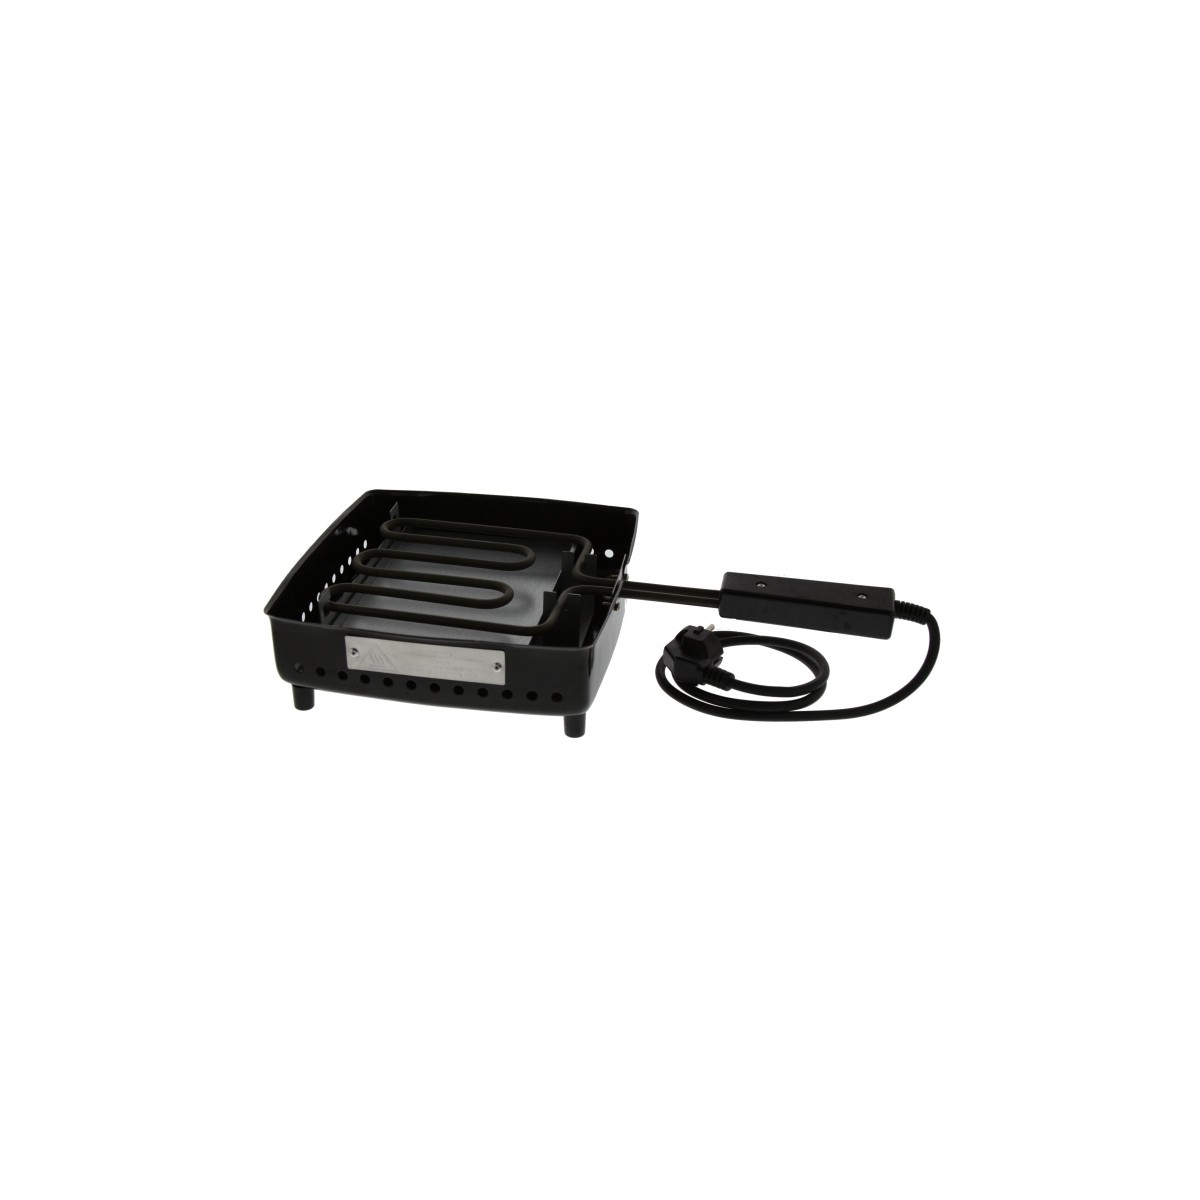 Electric coal lighter